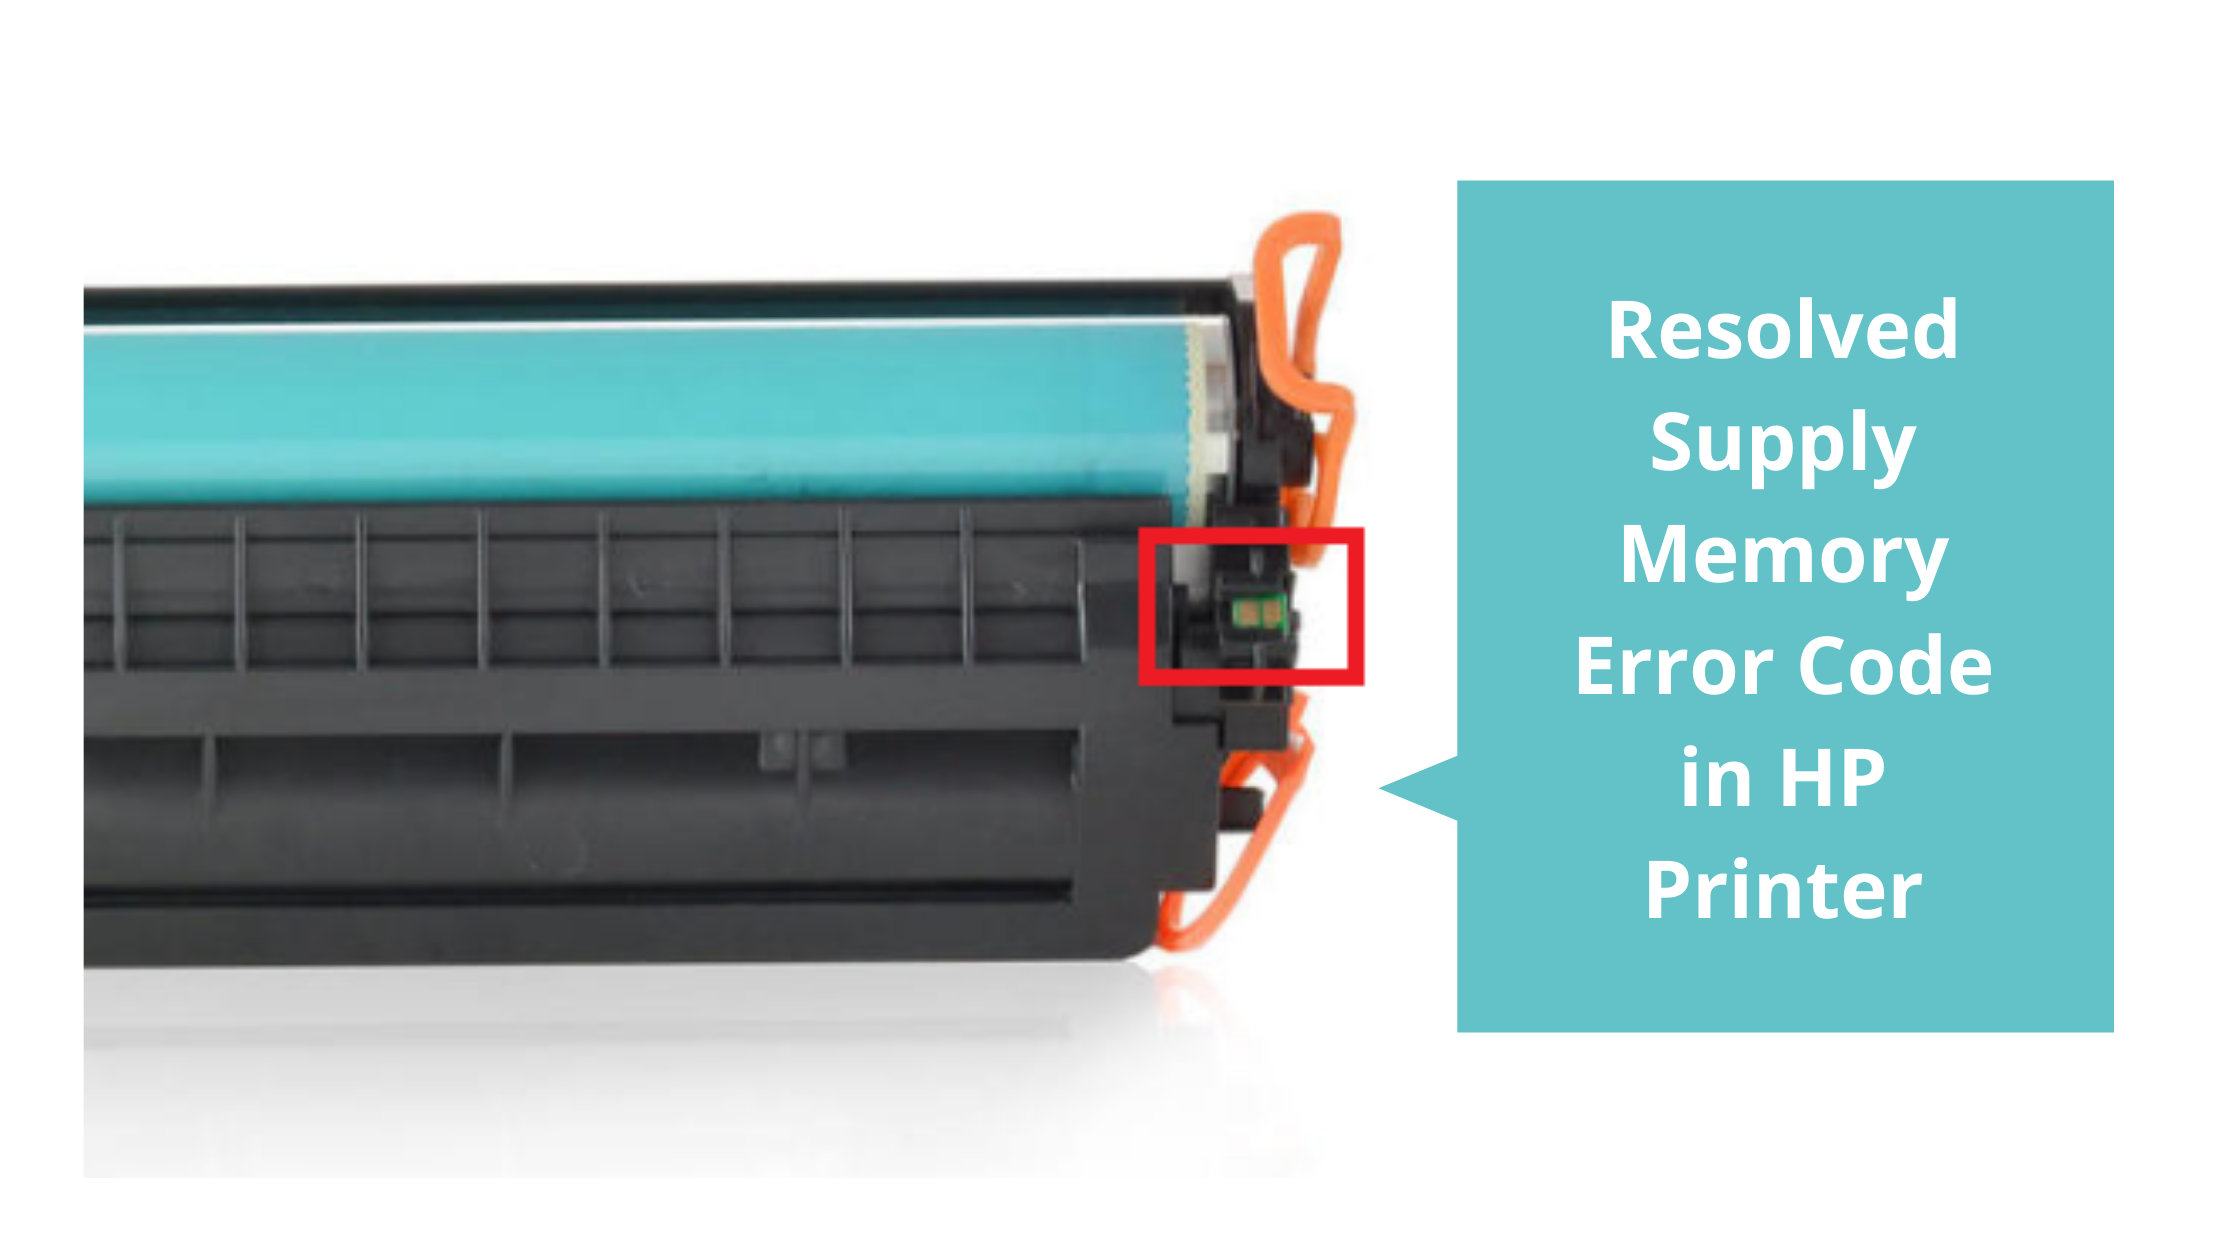 Resolved Supply Memory Error Code in HP Printer